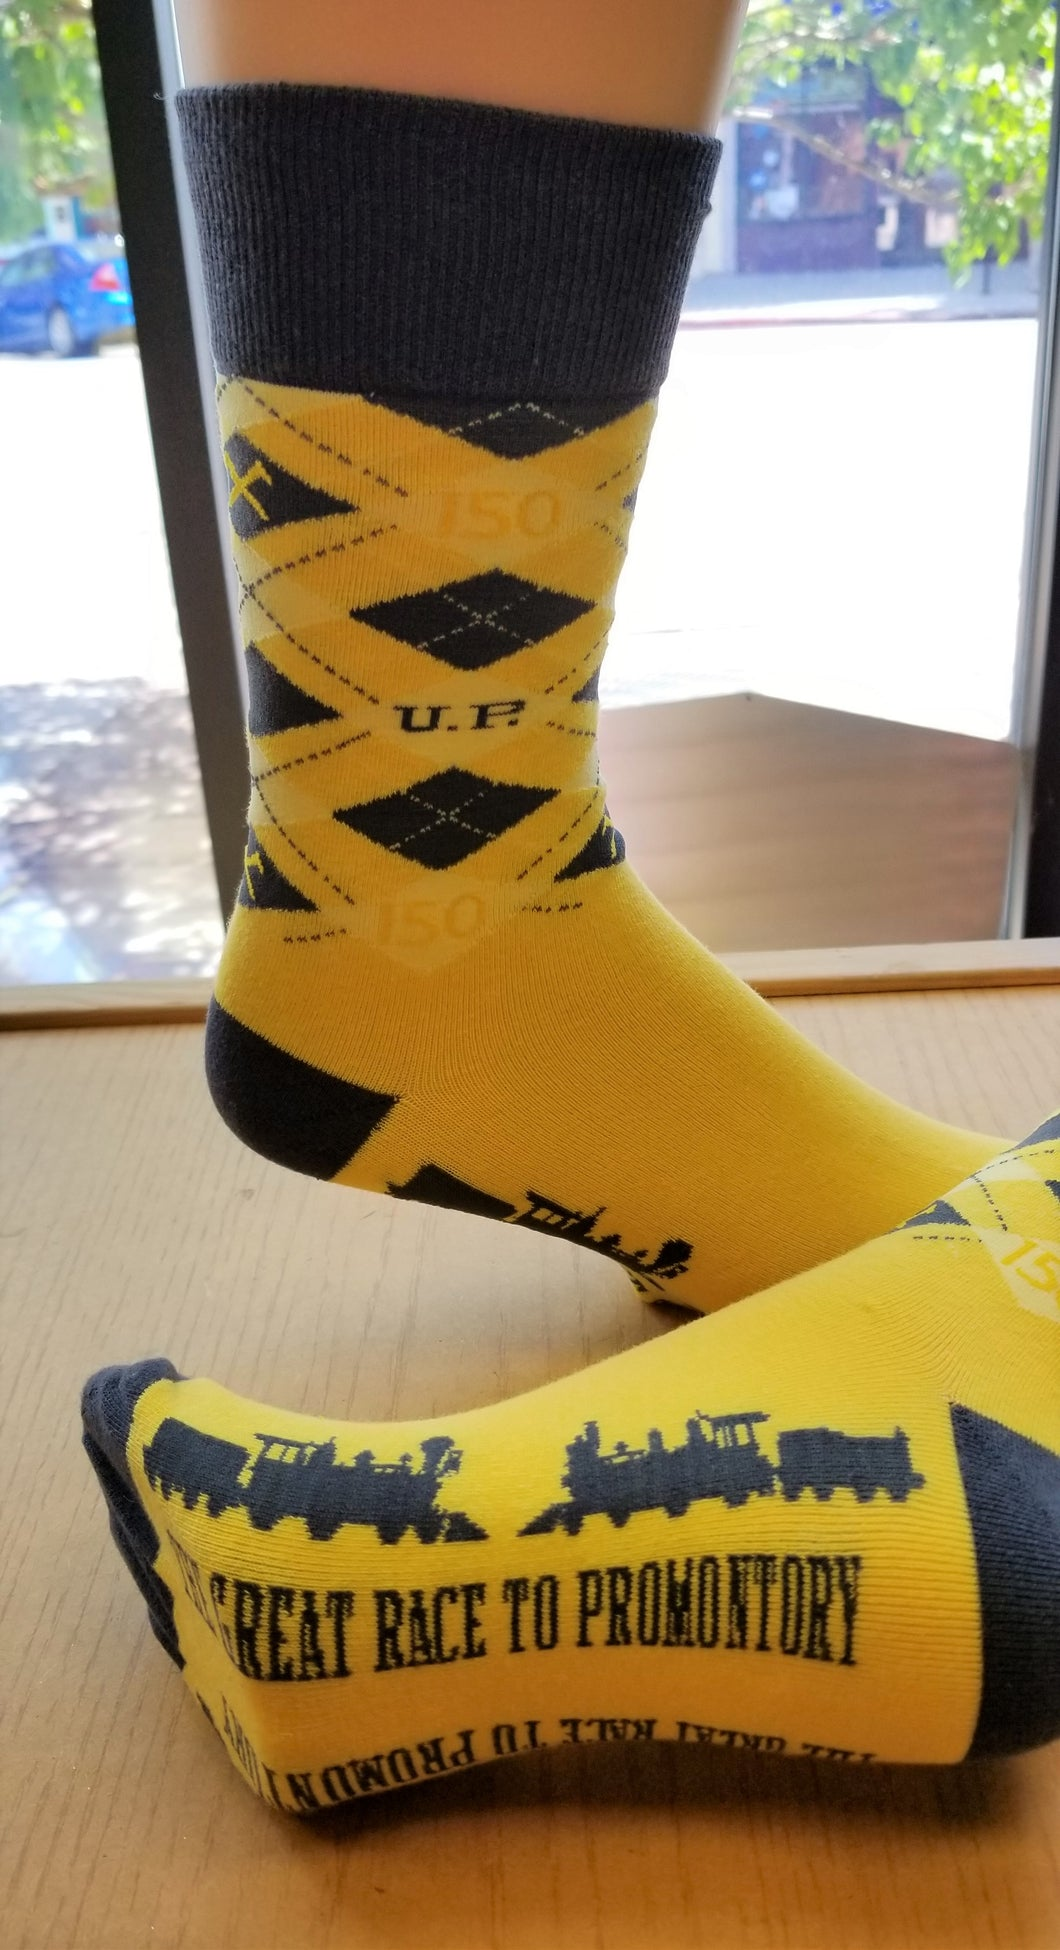 150th Great Race to Promontory Anniversary Socks